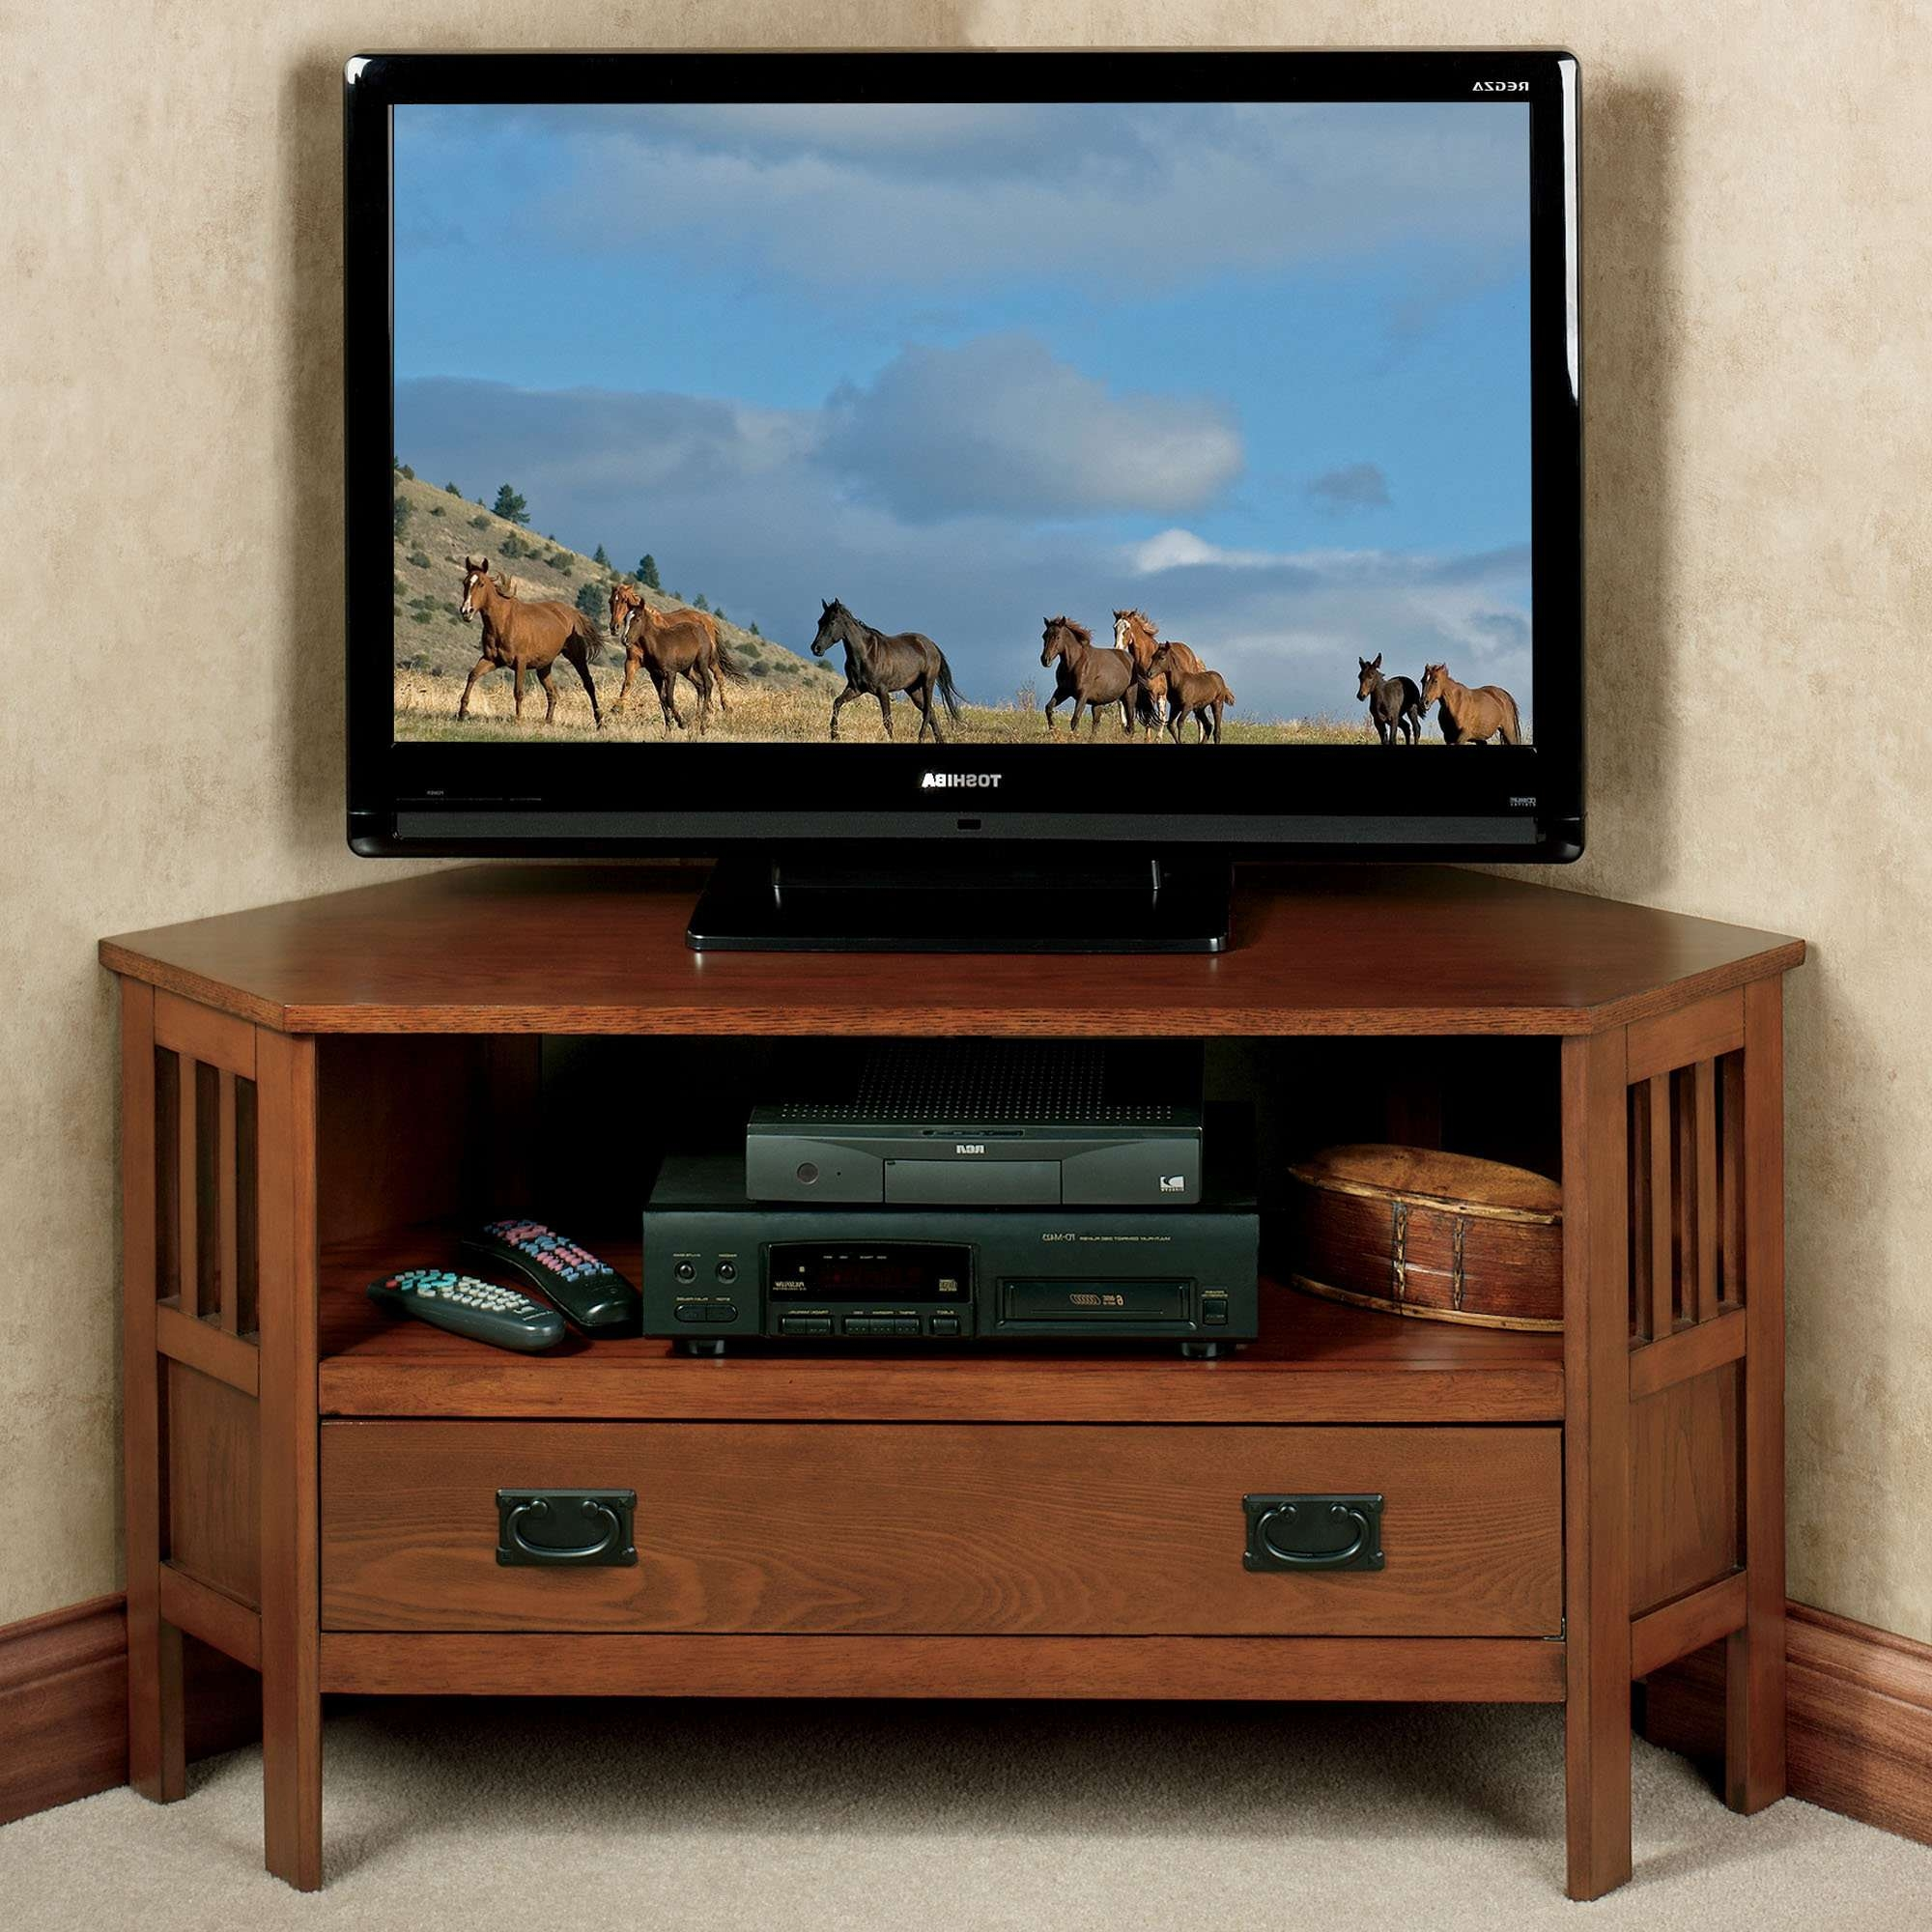 Good Tv Stands 55 Inch Flat Screen 61 On Interior Decor Home With With 61 Inch Tv Stands (View 9 of 15)